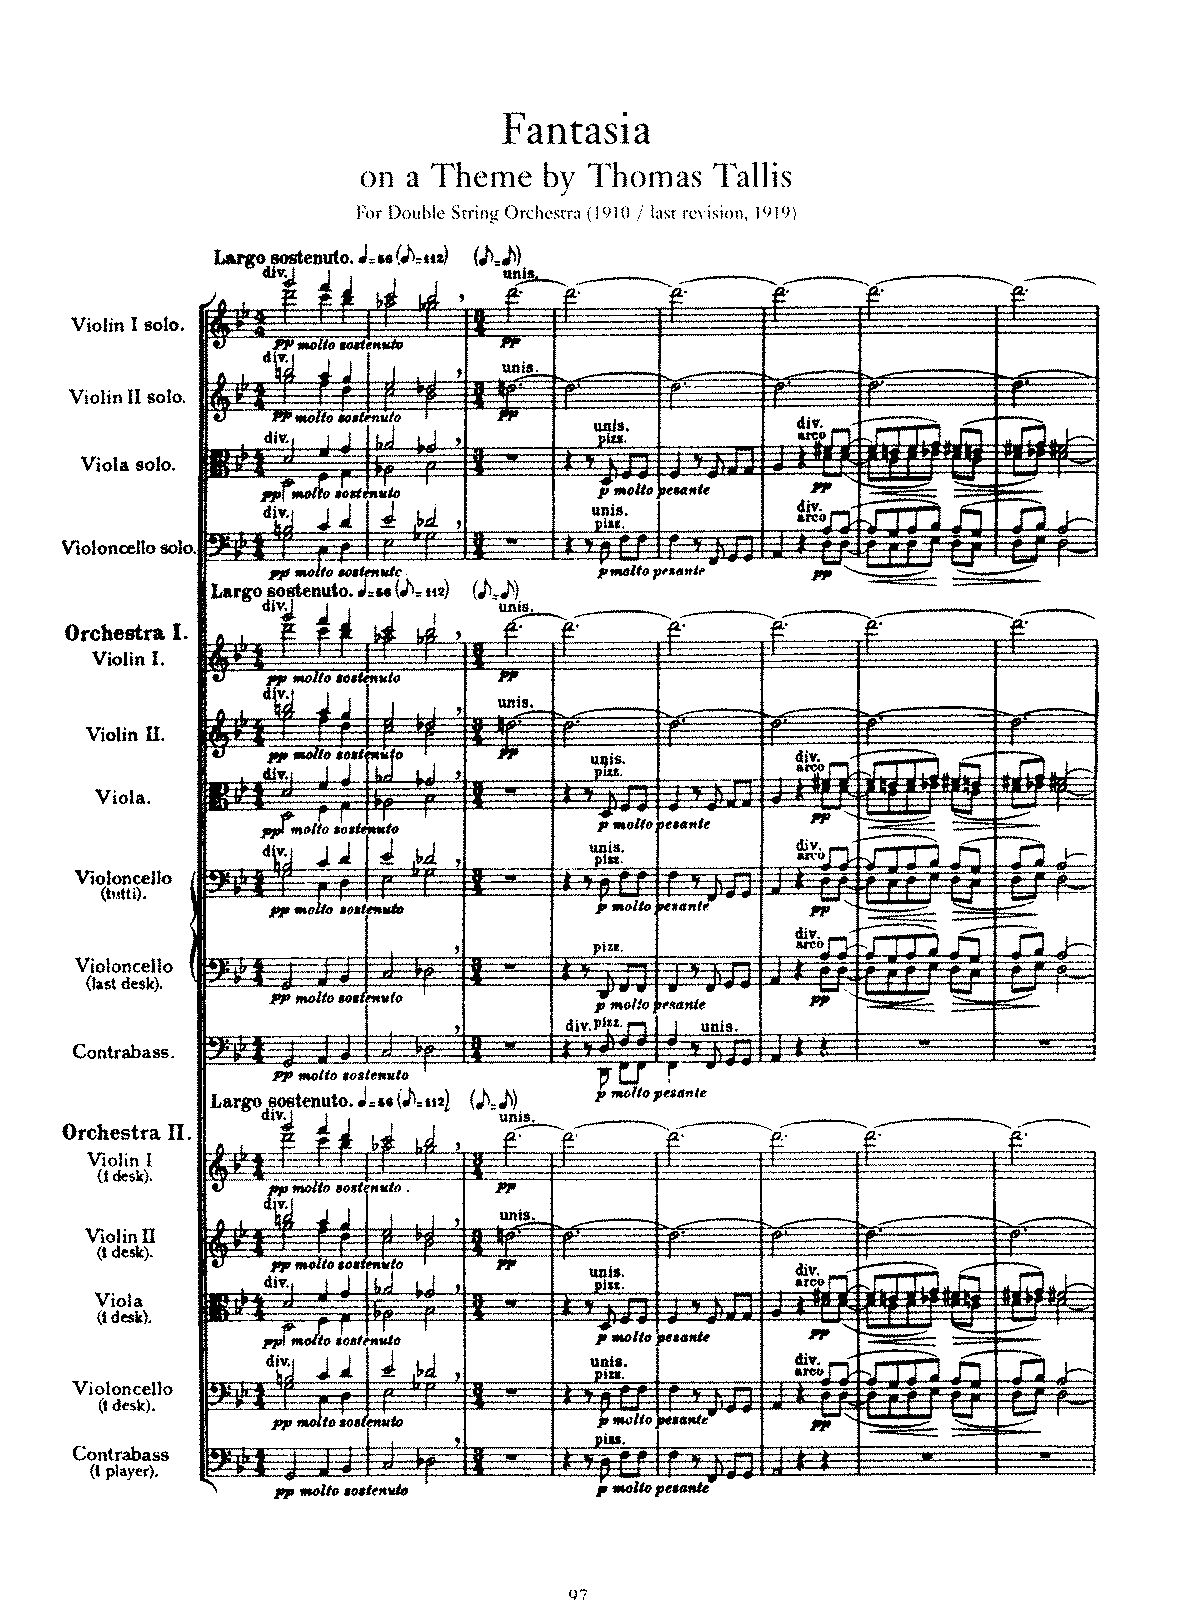 PMLP53497-Vaughan-Williams - Fantasia on a Theme by Thomas Tallis (orch. score).pdf